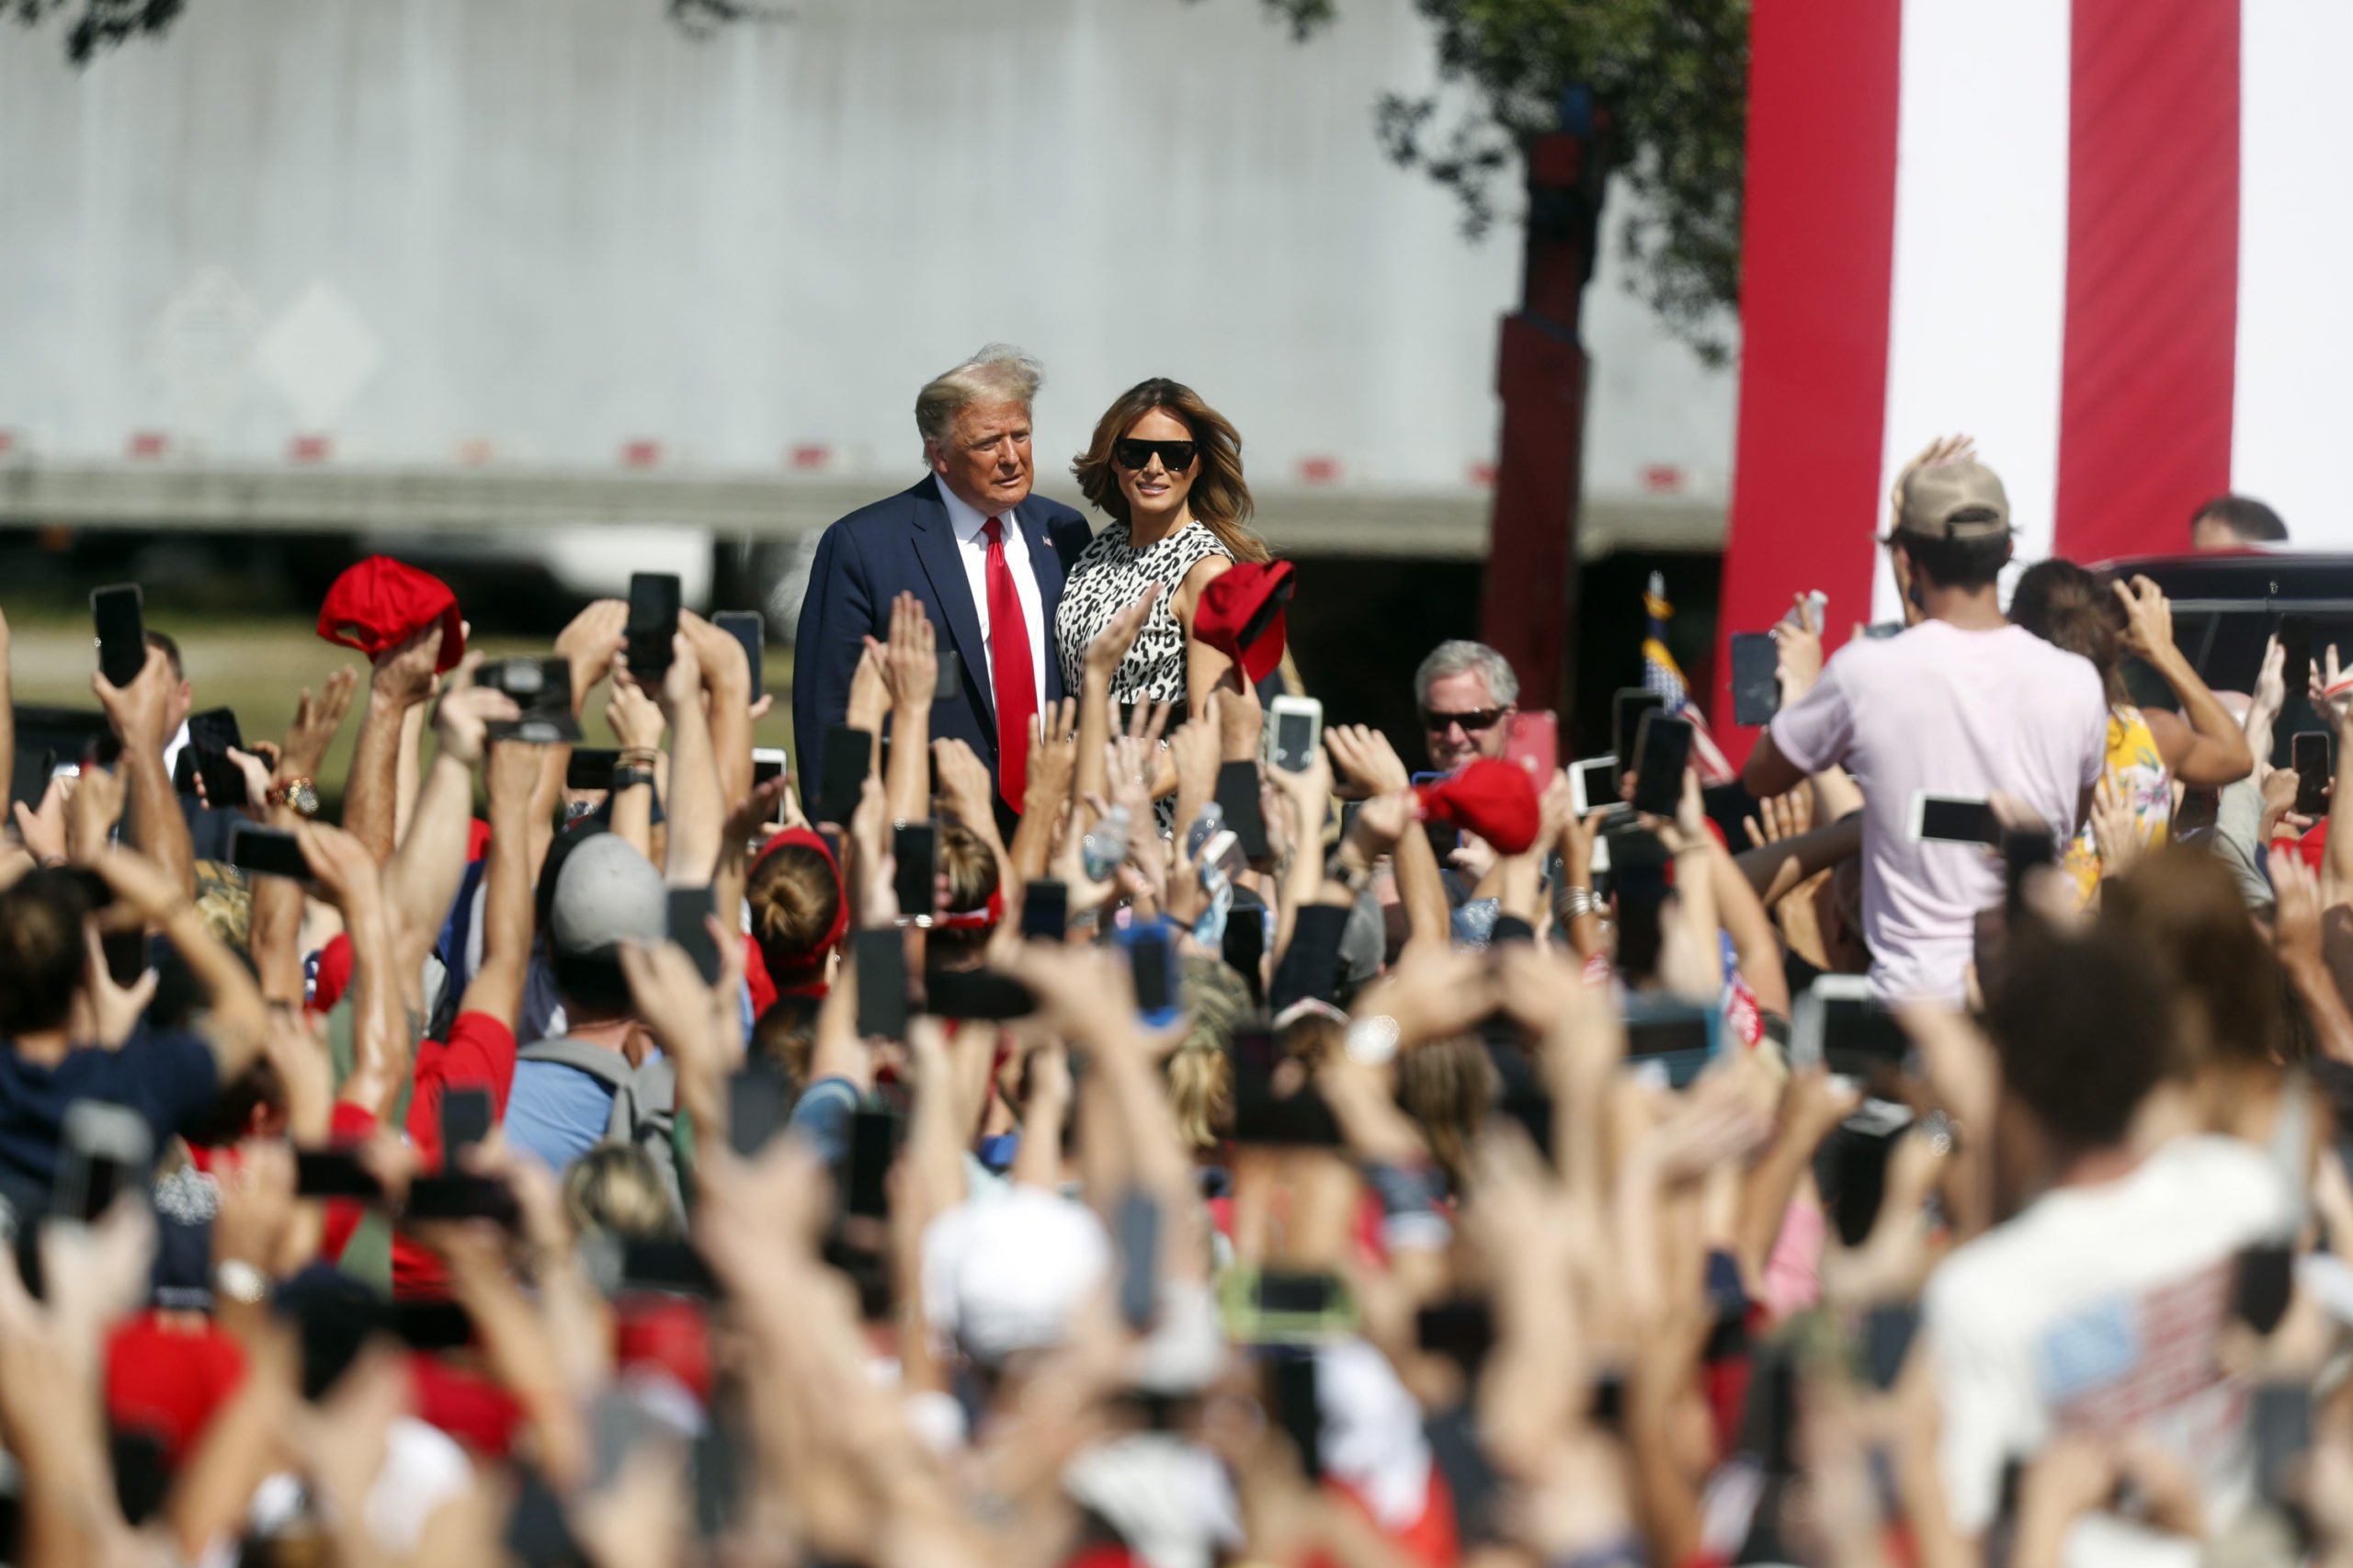 President Donald Trump arrives with his wife First Lady Melania Trump to give a campaign speech on Oct. 29 in Tampa, Florida. (Octavio Jones/Getty Images)